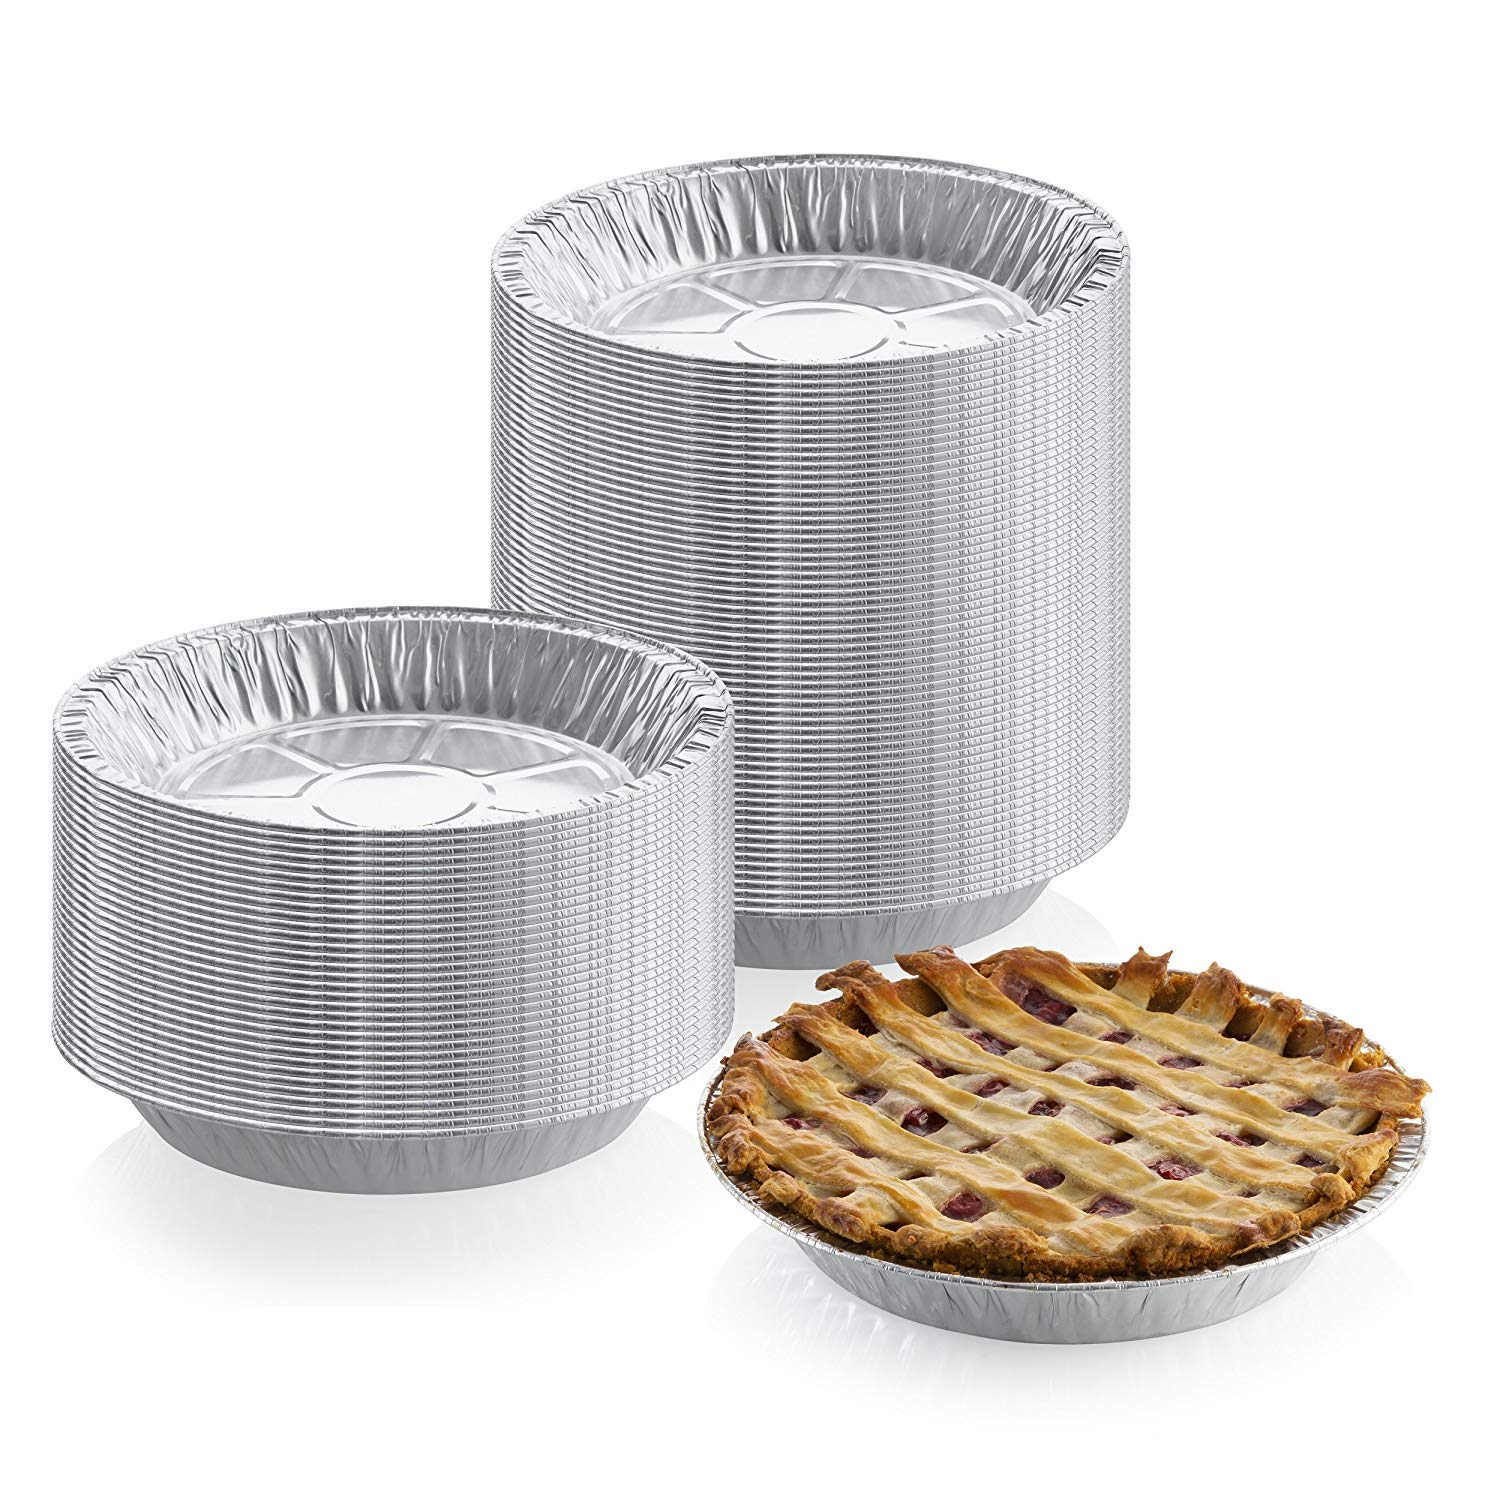 9'' x 1'' Medium Depth Aluminum Silver Foil Pie Pan (Pack of 25) – Disposable Round Tin Plates for Pies, Tart Quiche, Cheese Cake and Deserts, Perfect for Pie Fundraisers